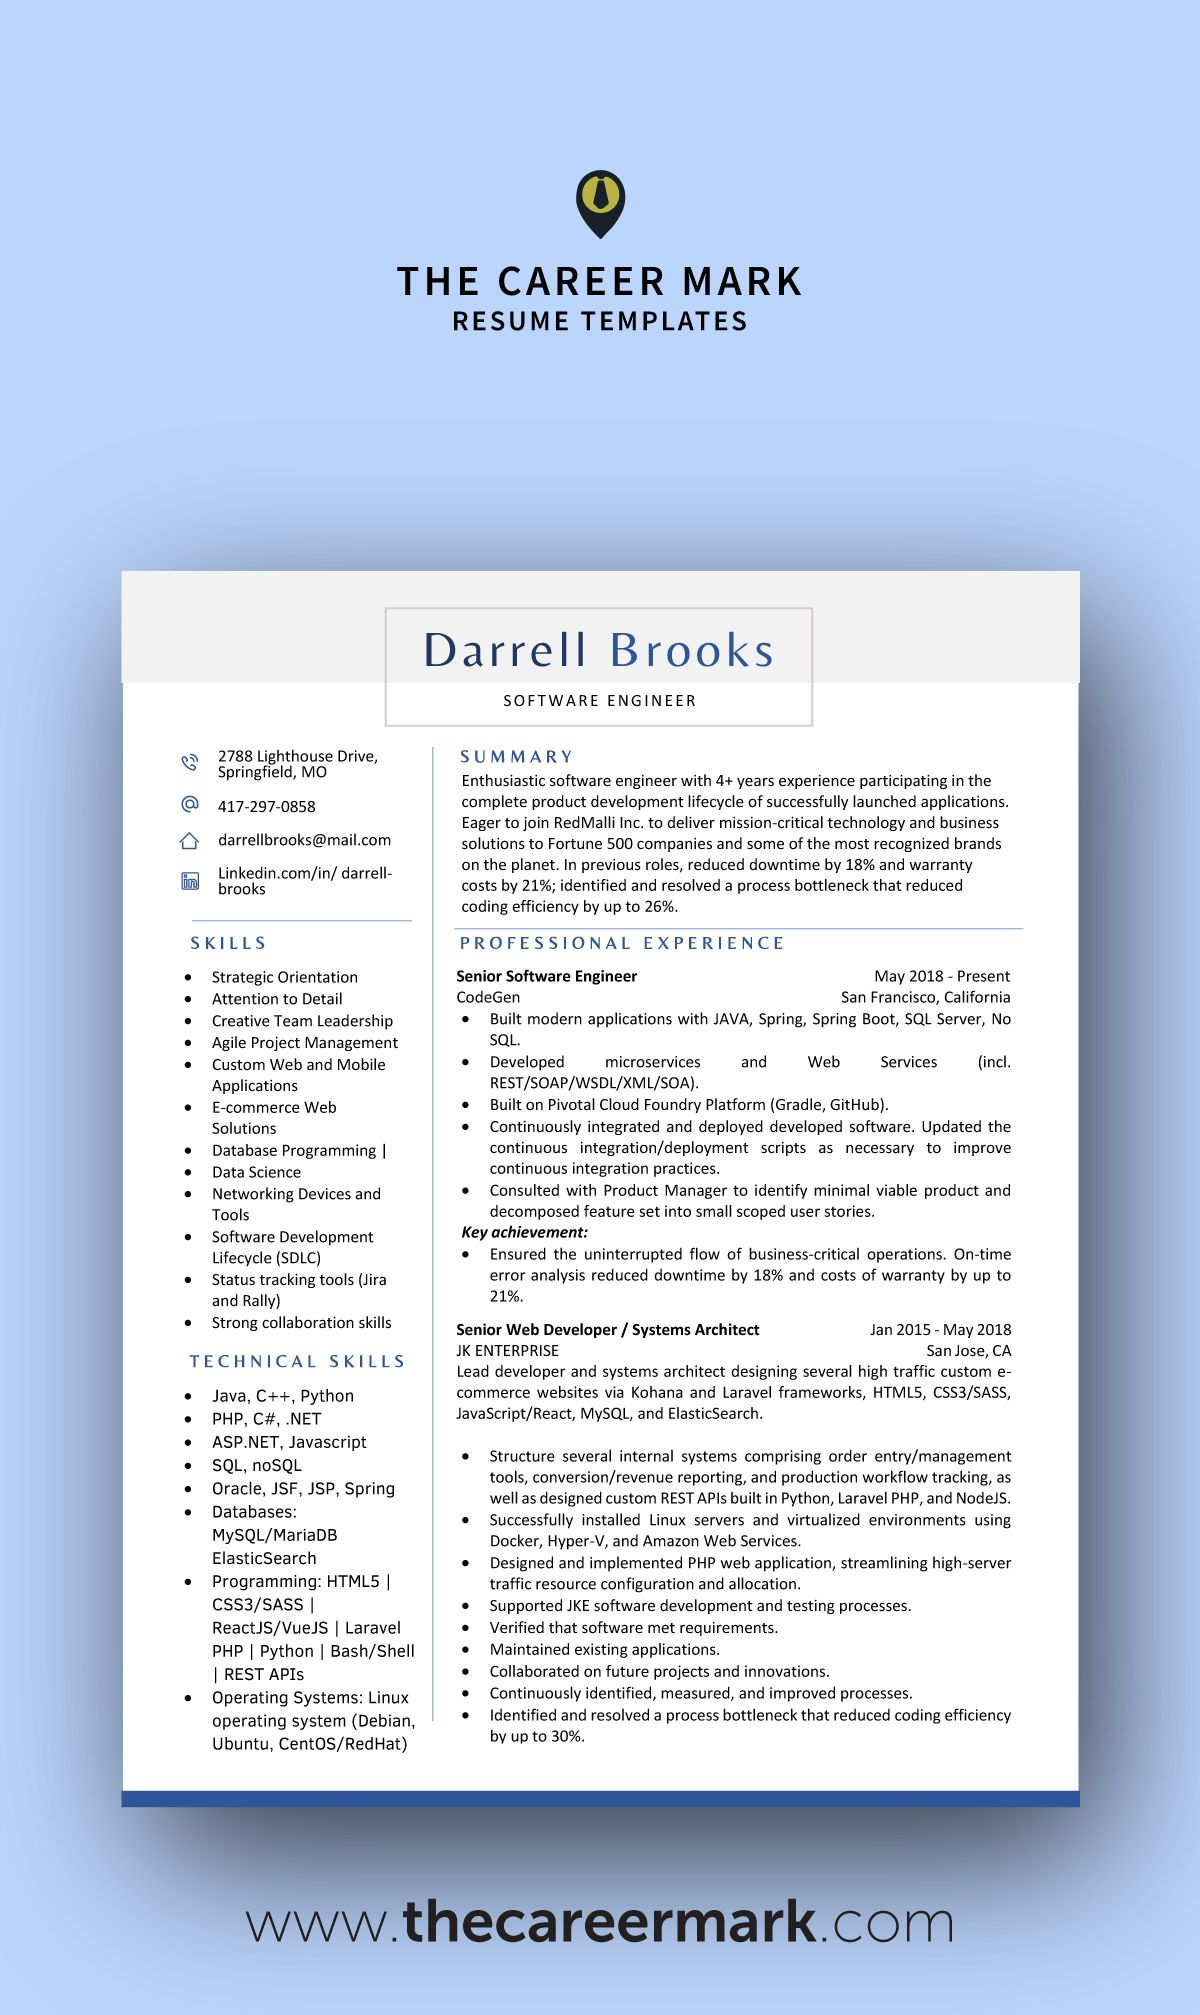 Modern Resume Templates That Make You Stand Out From Competition In 2020 Resume Templates Modern Resume Template Resume Template Professional